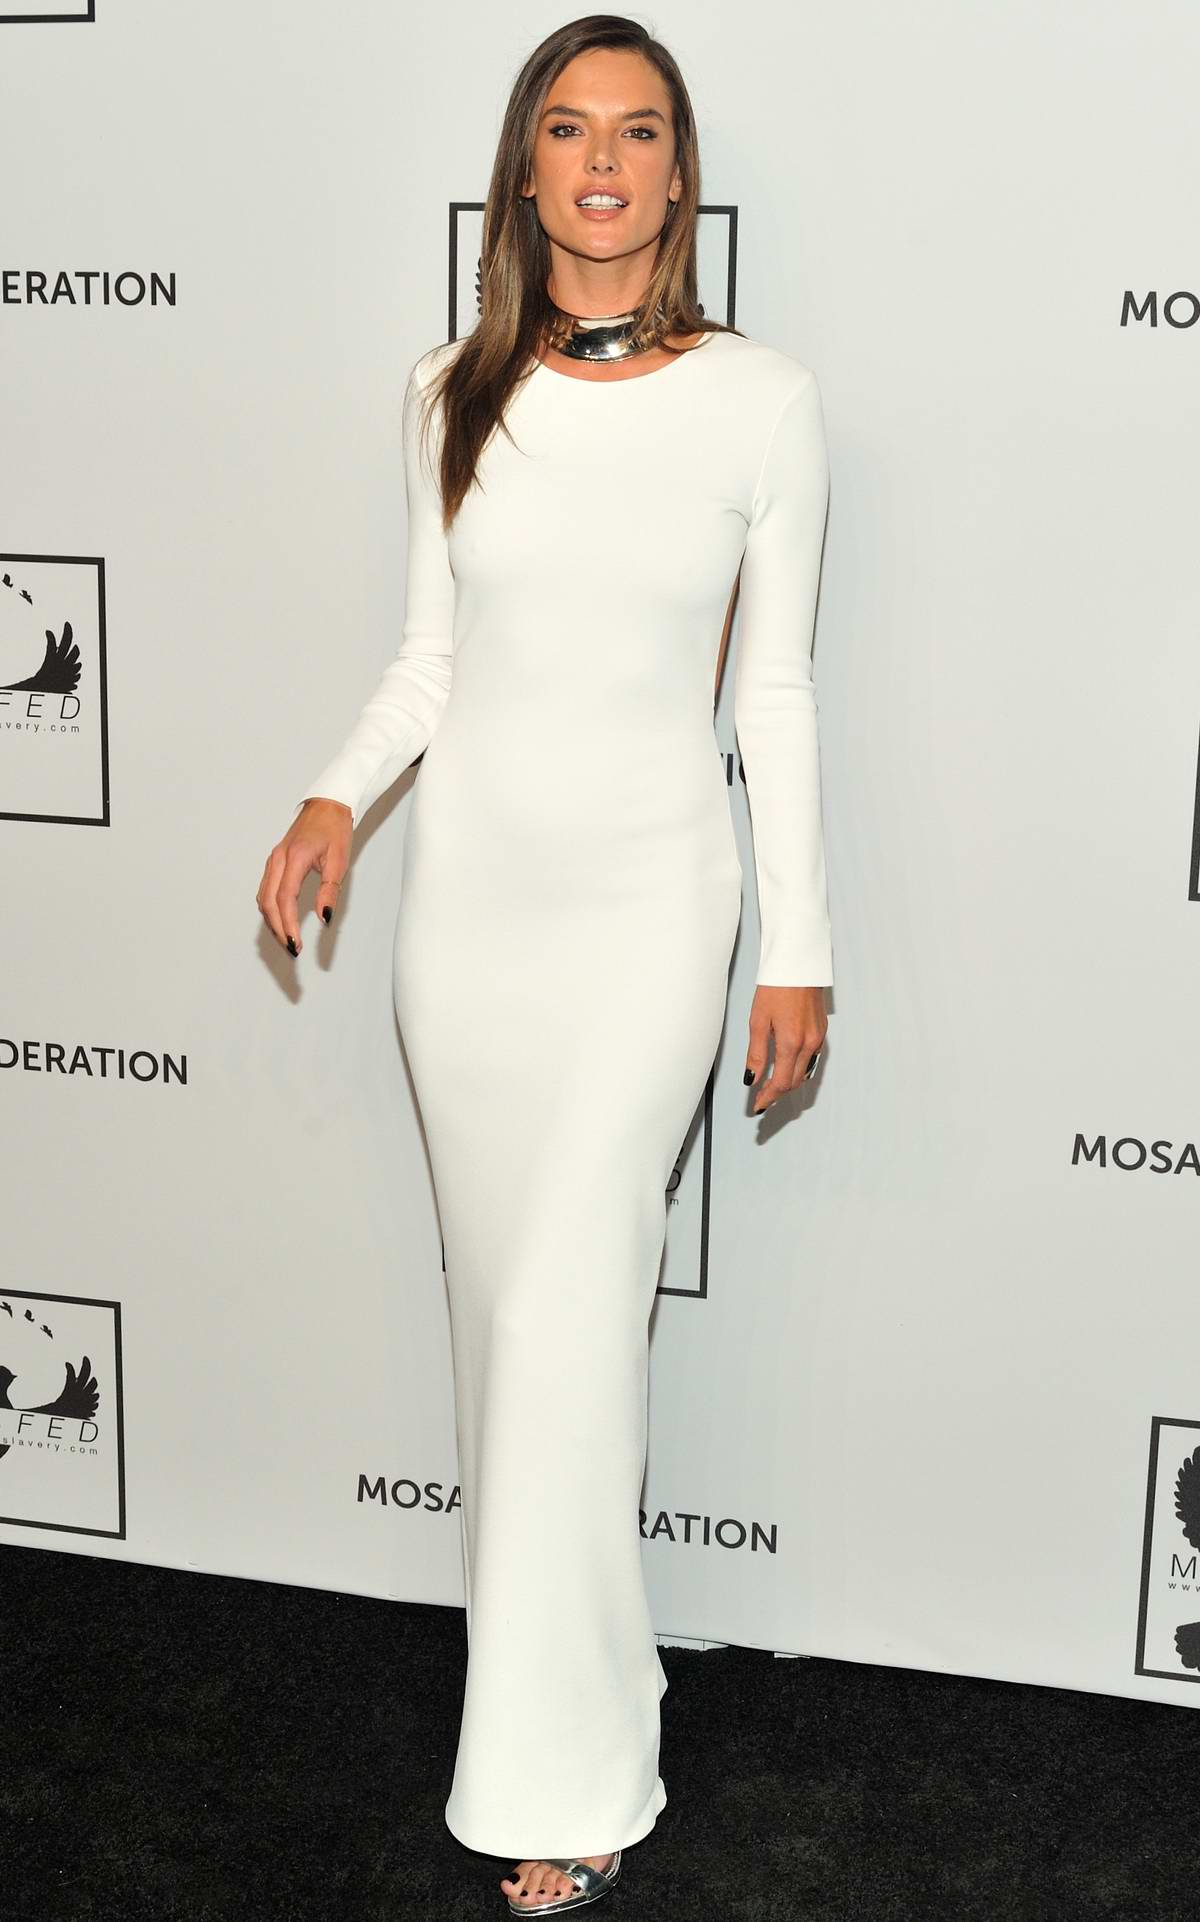 Alessandra Ambrosio Attends The Mosaic Hederation Gala